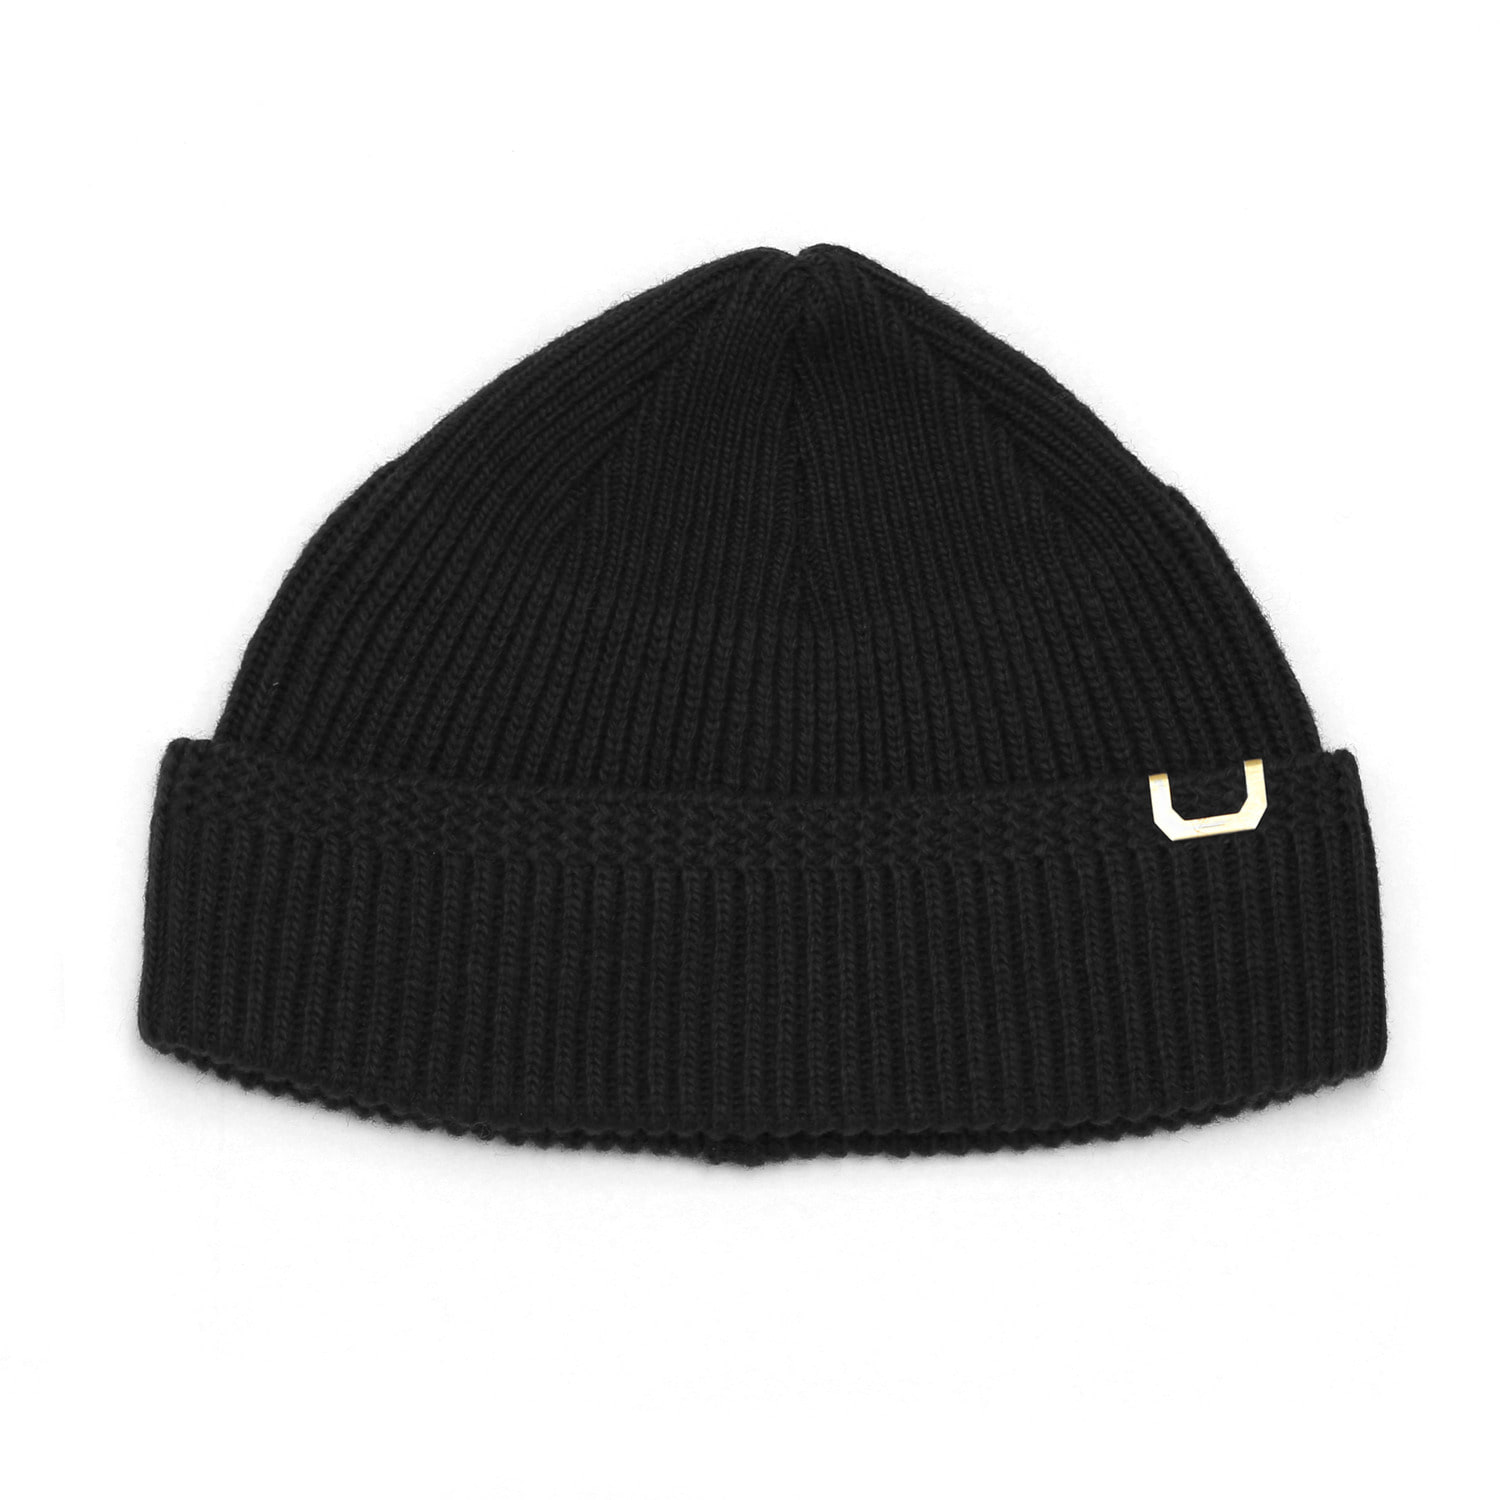 WATCH CAP / LAMBS WOOL / PS BLACK